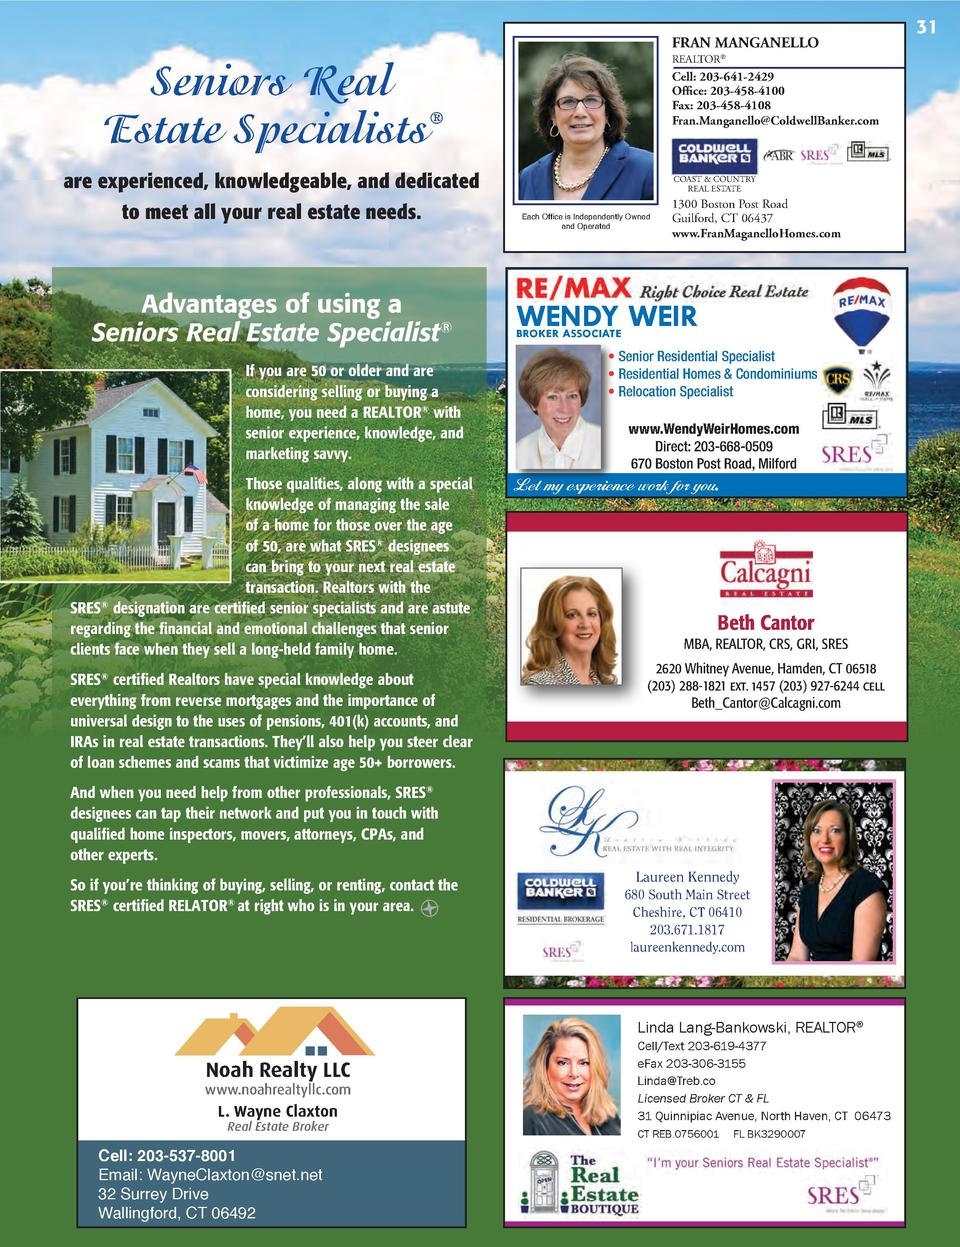 FRAN MANGANELLO REALTOR    Seniors Real Estate Specialists   are experienced, knowledgeable, and dedicated to meet all you...